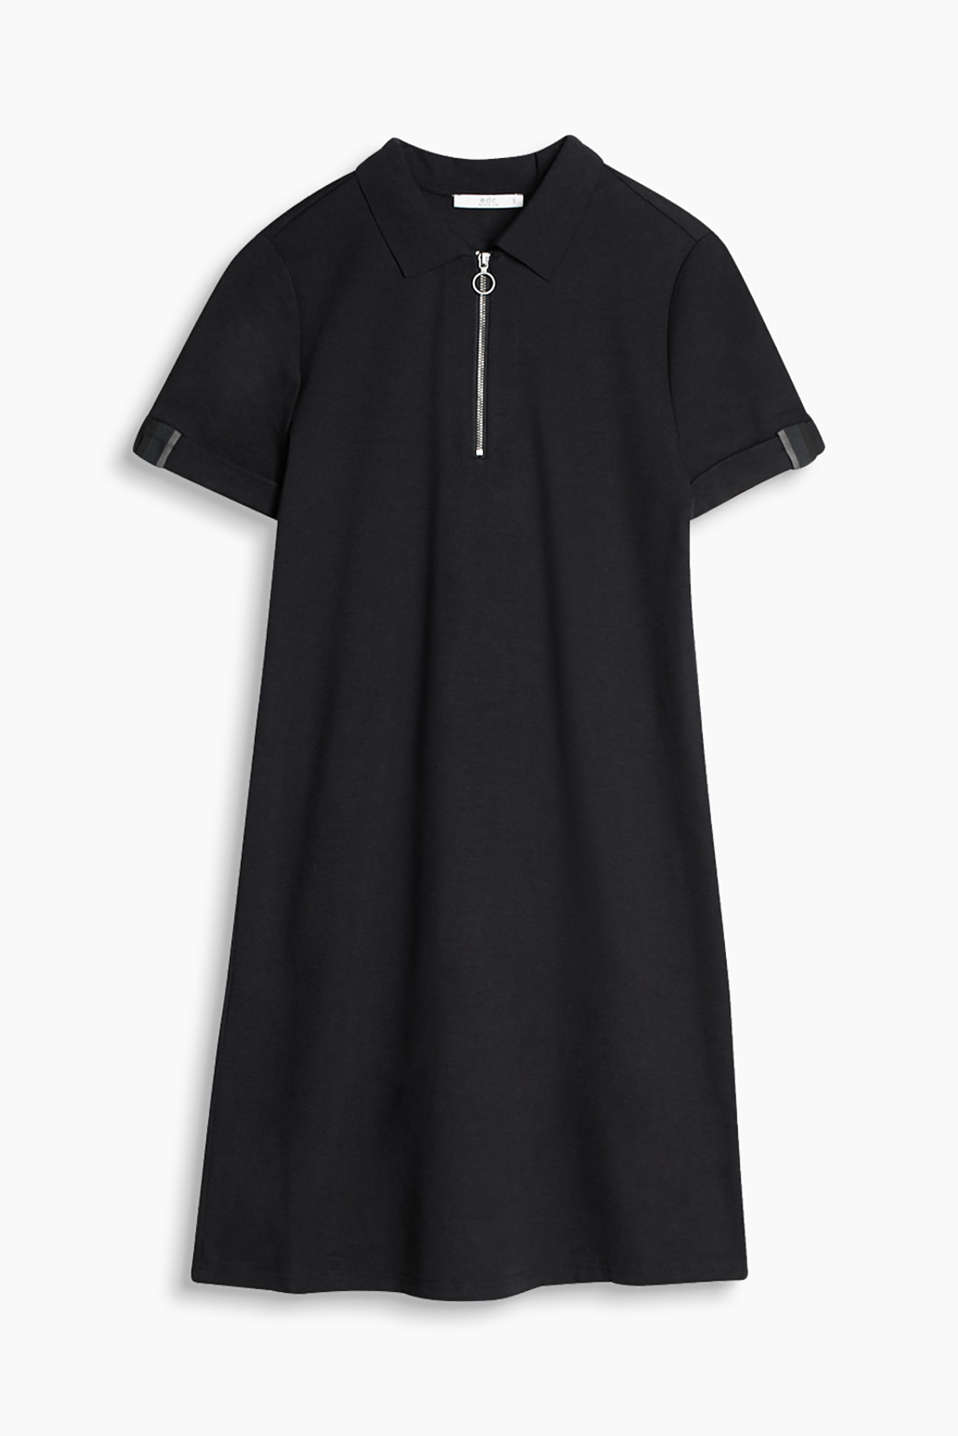 Polo dress in a soft fabric blend with a zip